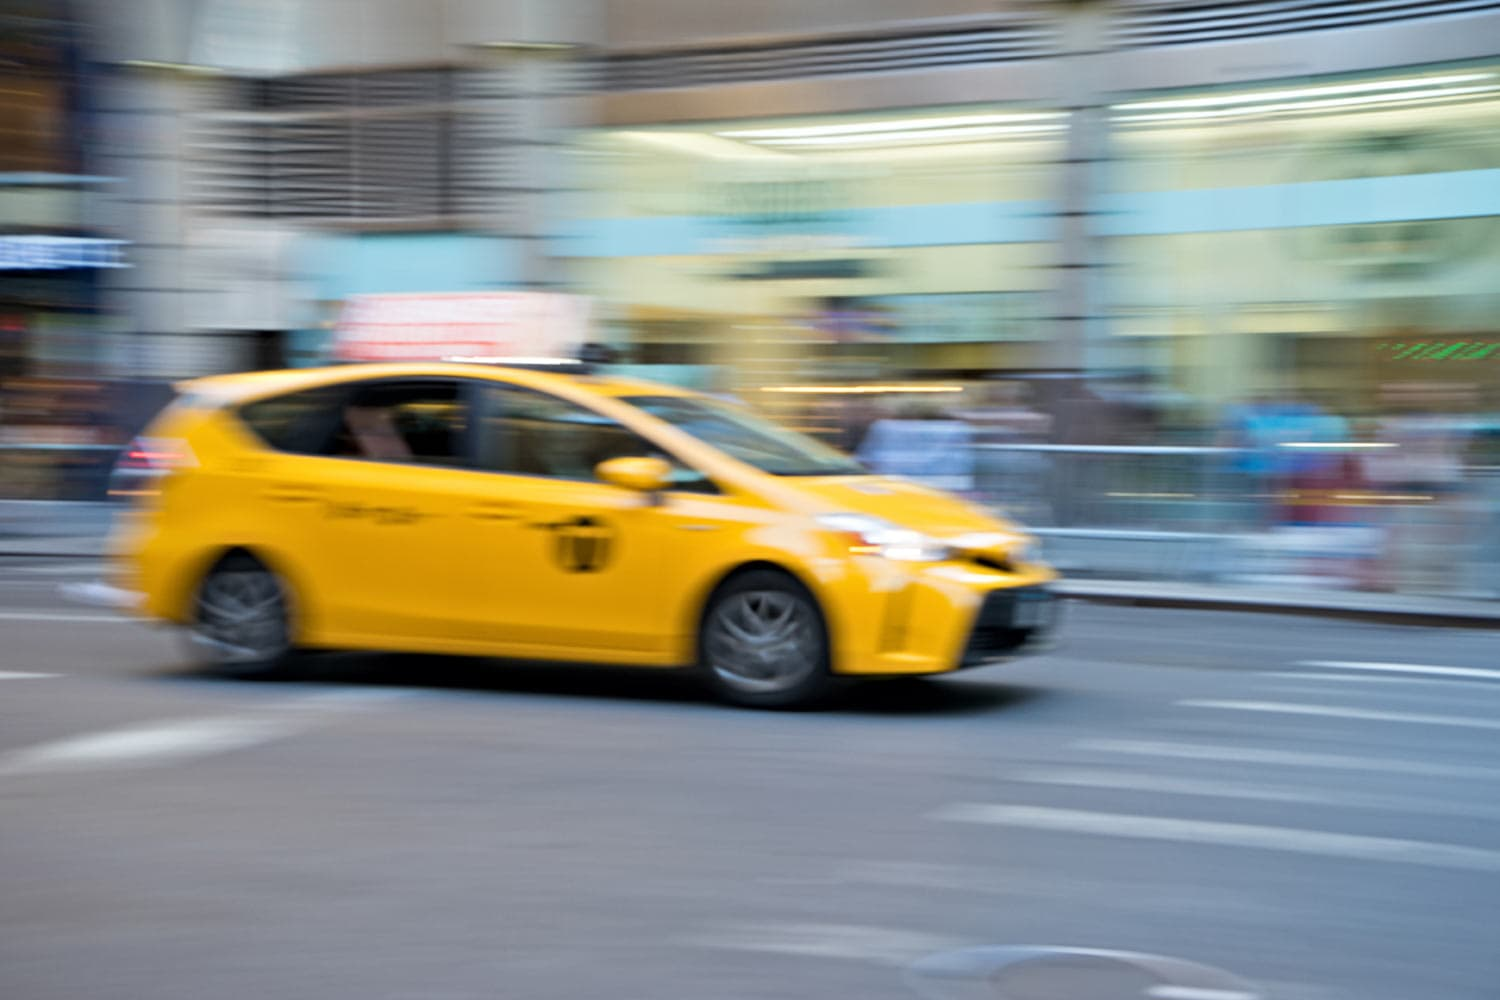 new york taxi blurry